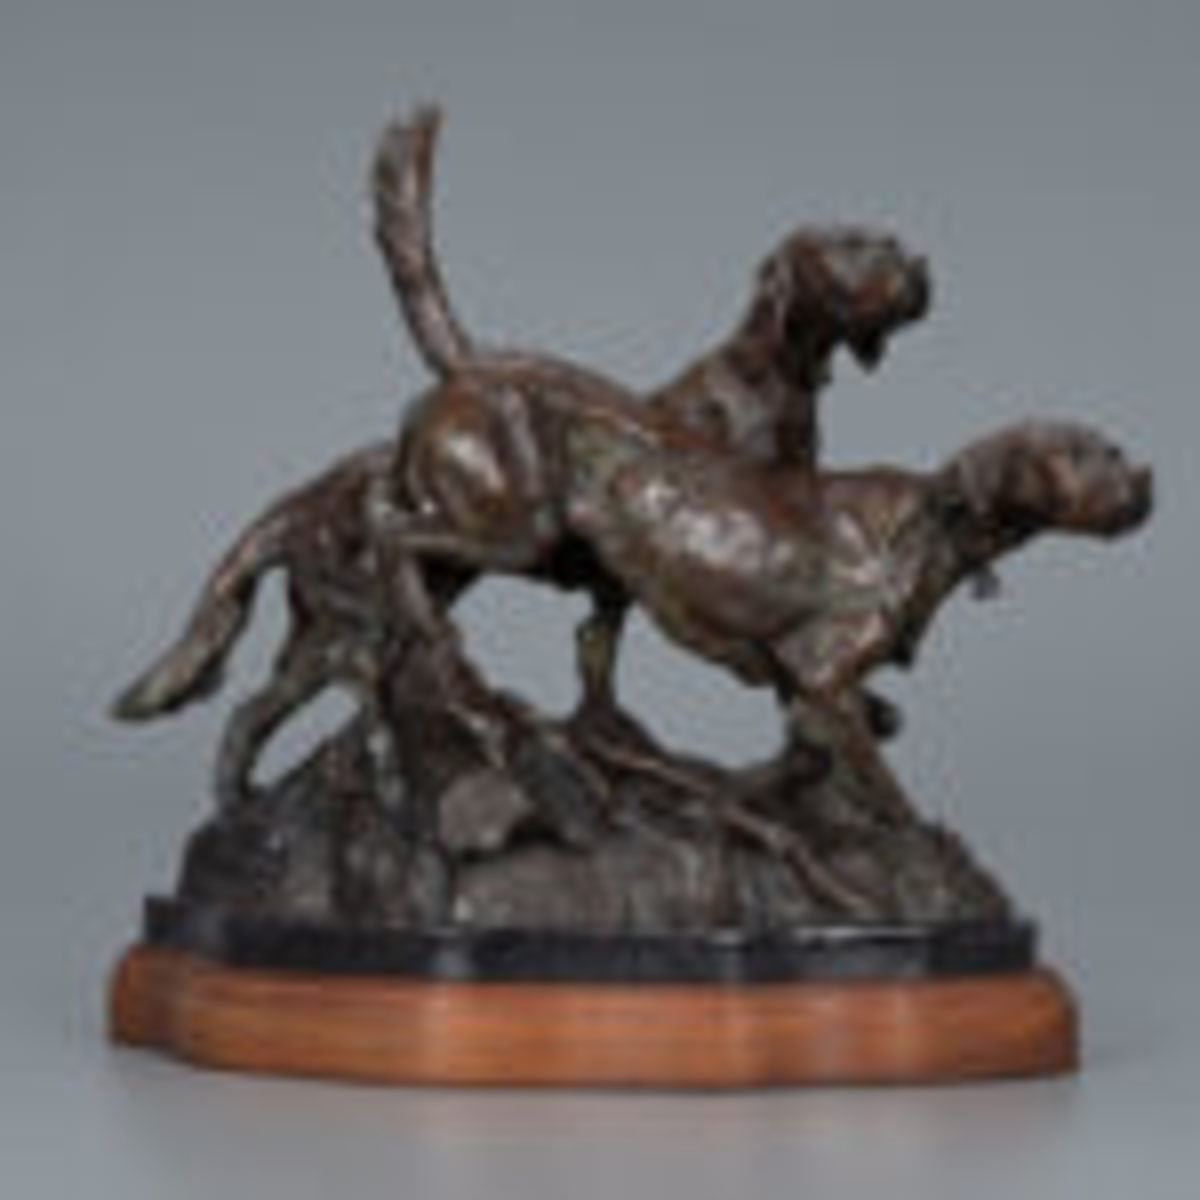 Walter T. Matia (b. 1953), Setter Pair, bronze, 11 3/4 by 15 3/4 by 7 in., Estimate: $1,000-$1,500